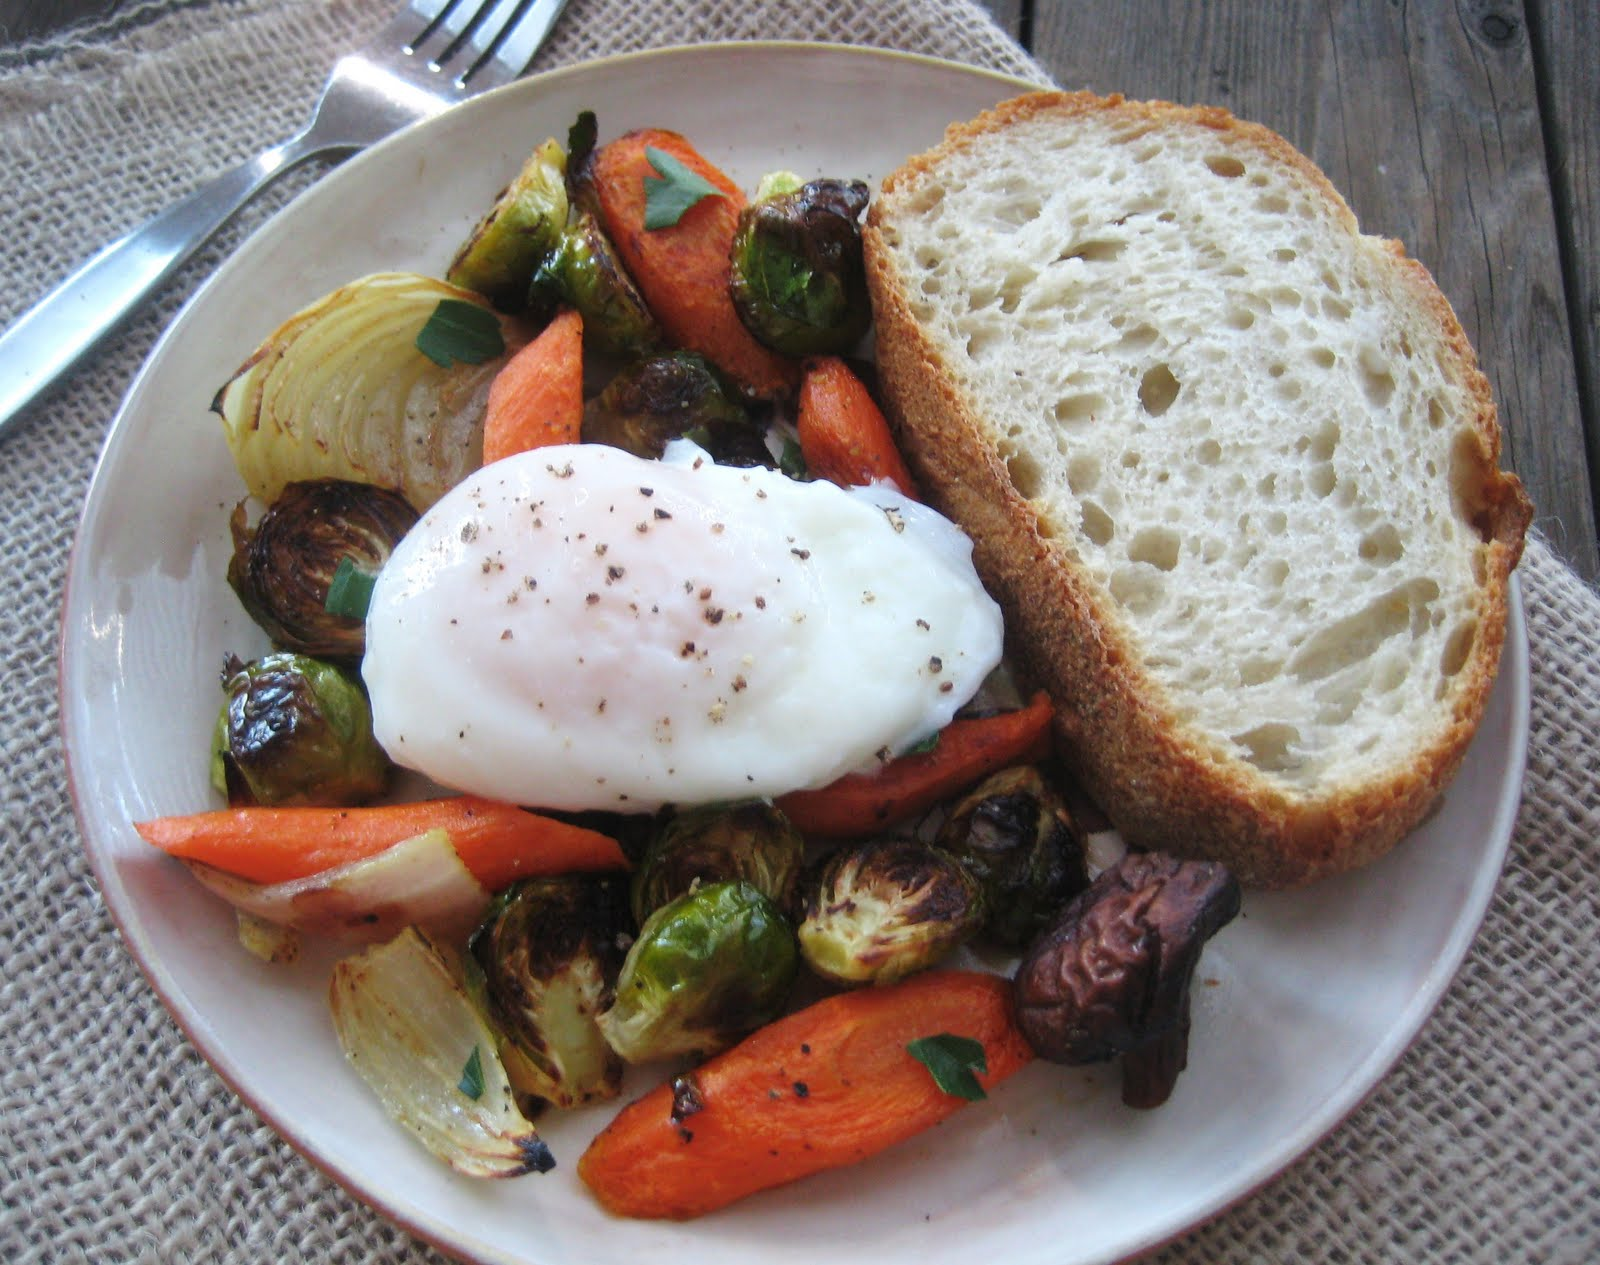 My Fare Foodie.: Poached Eggs Over Roasted Vegetables